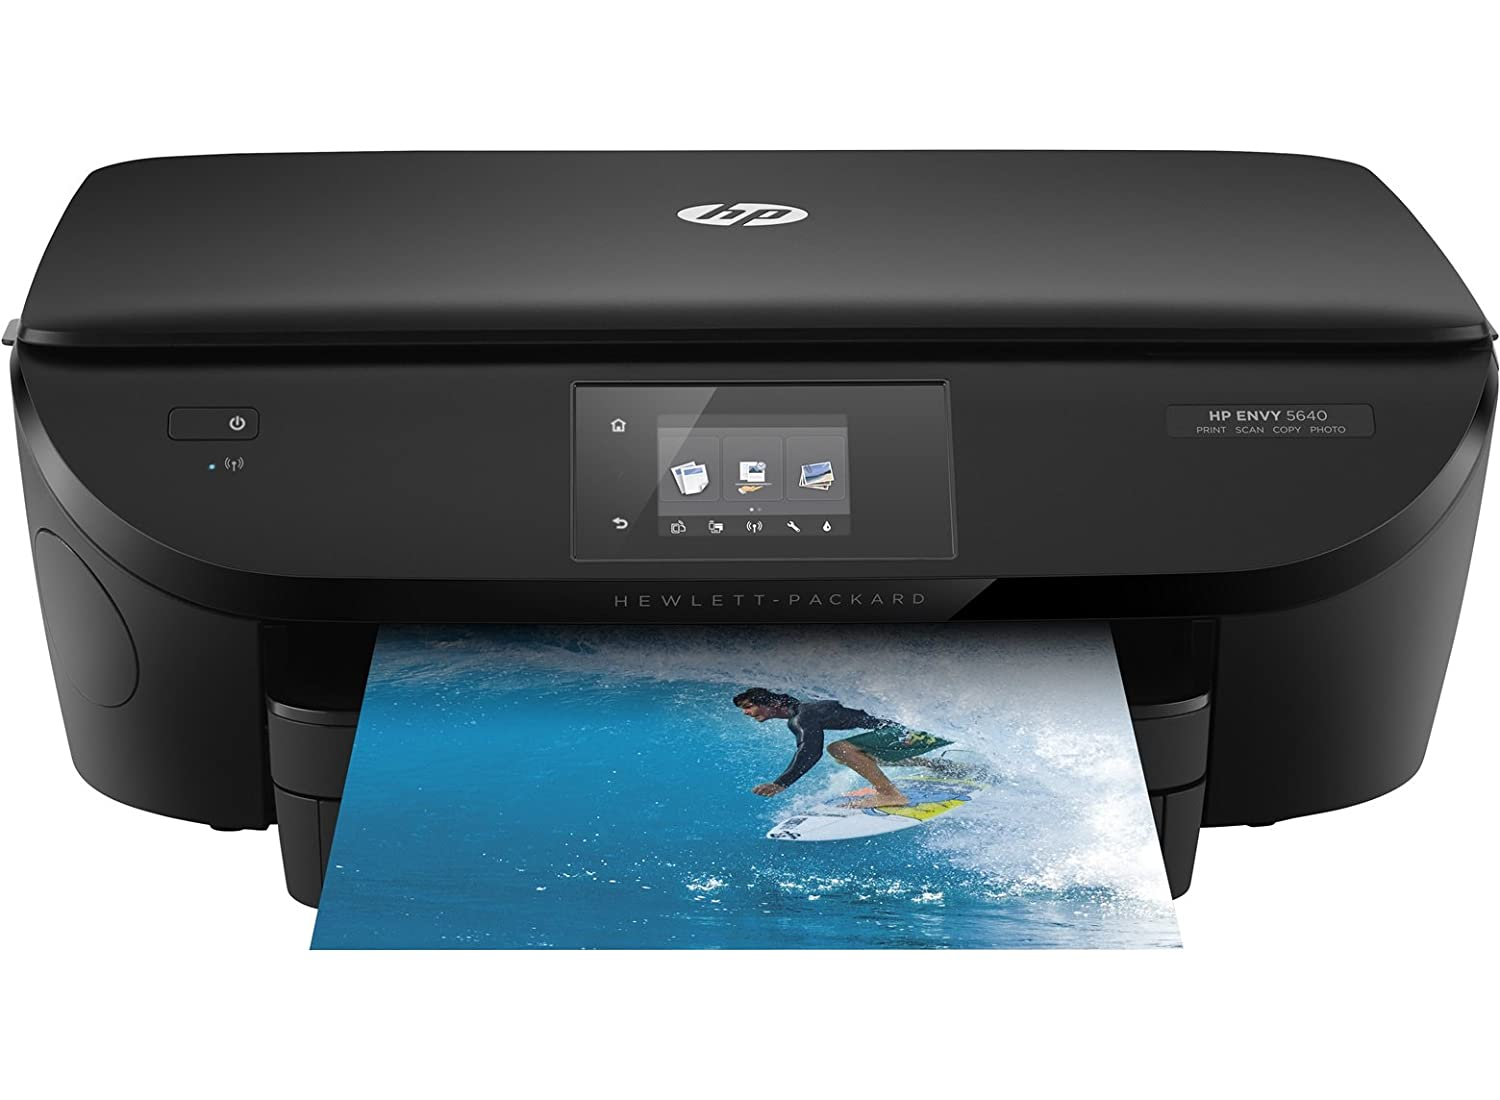 Amazon.com: HP ENVY 5643 E B9S63A All in One Printer, Black ...